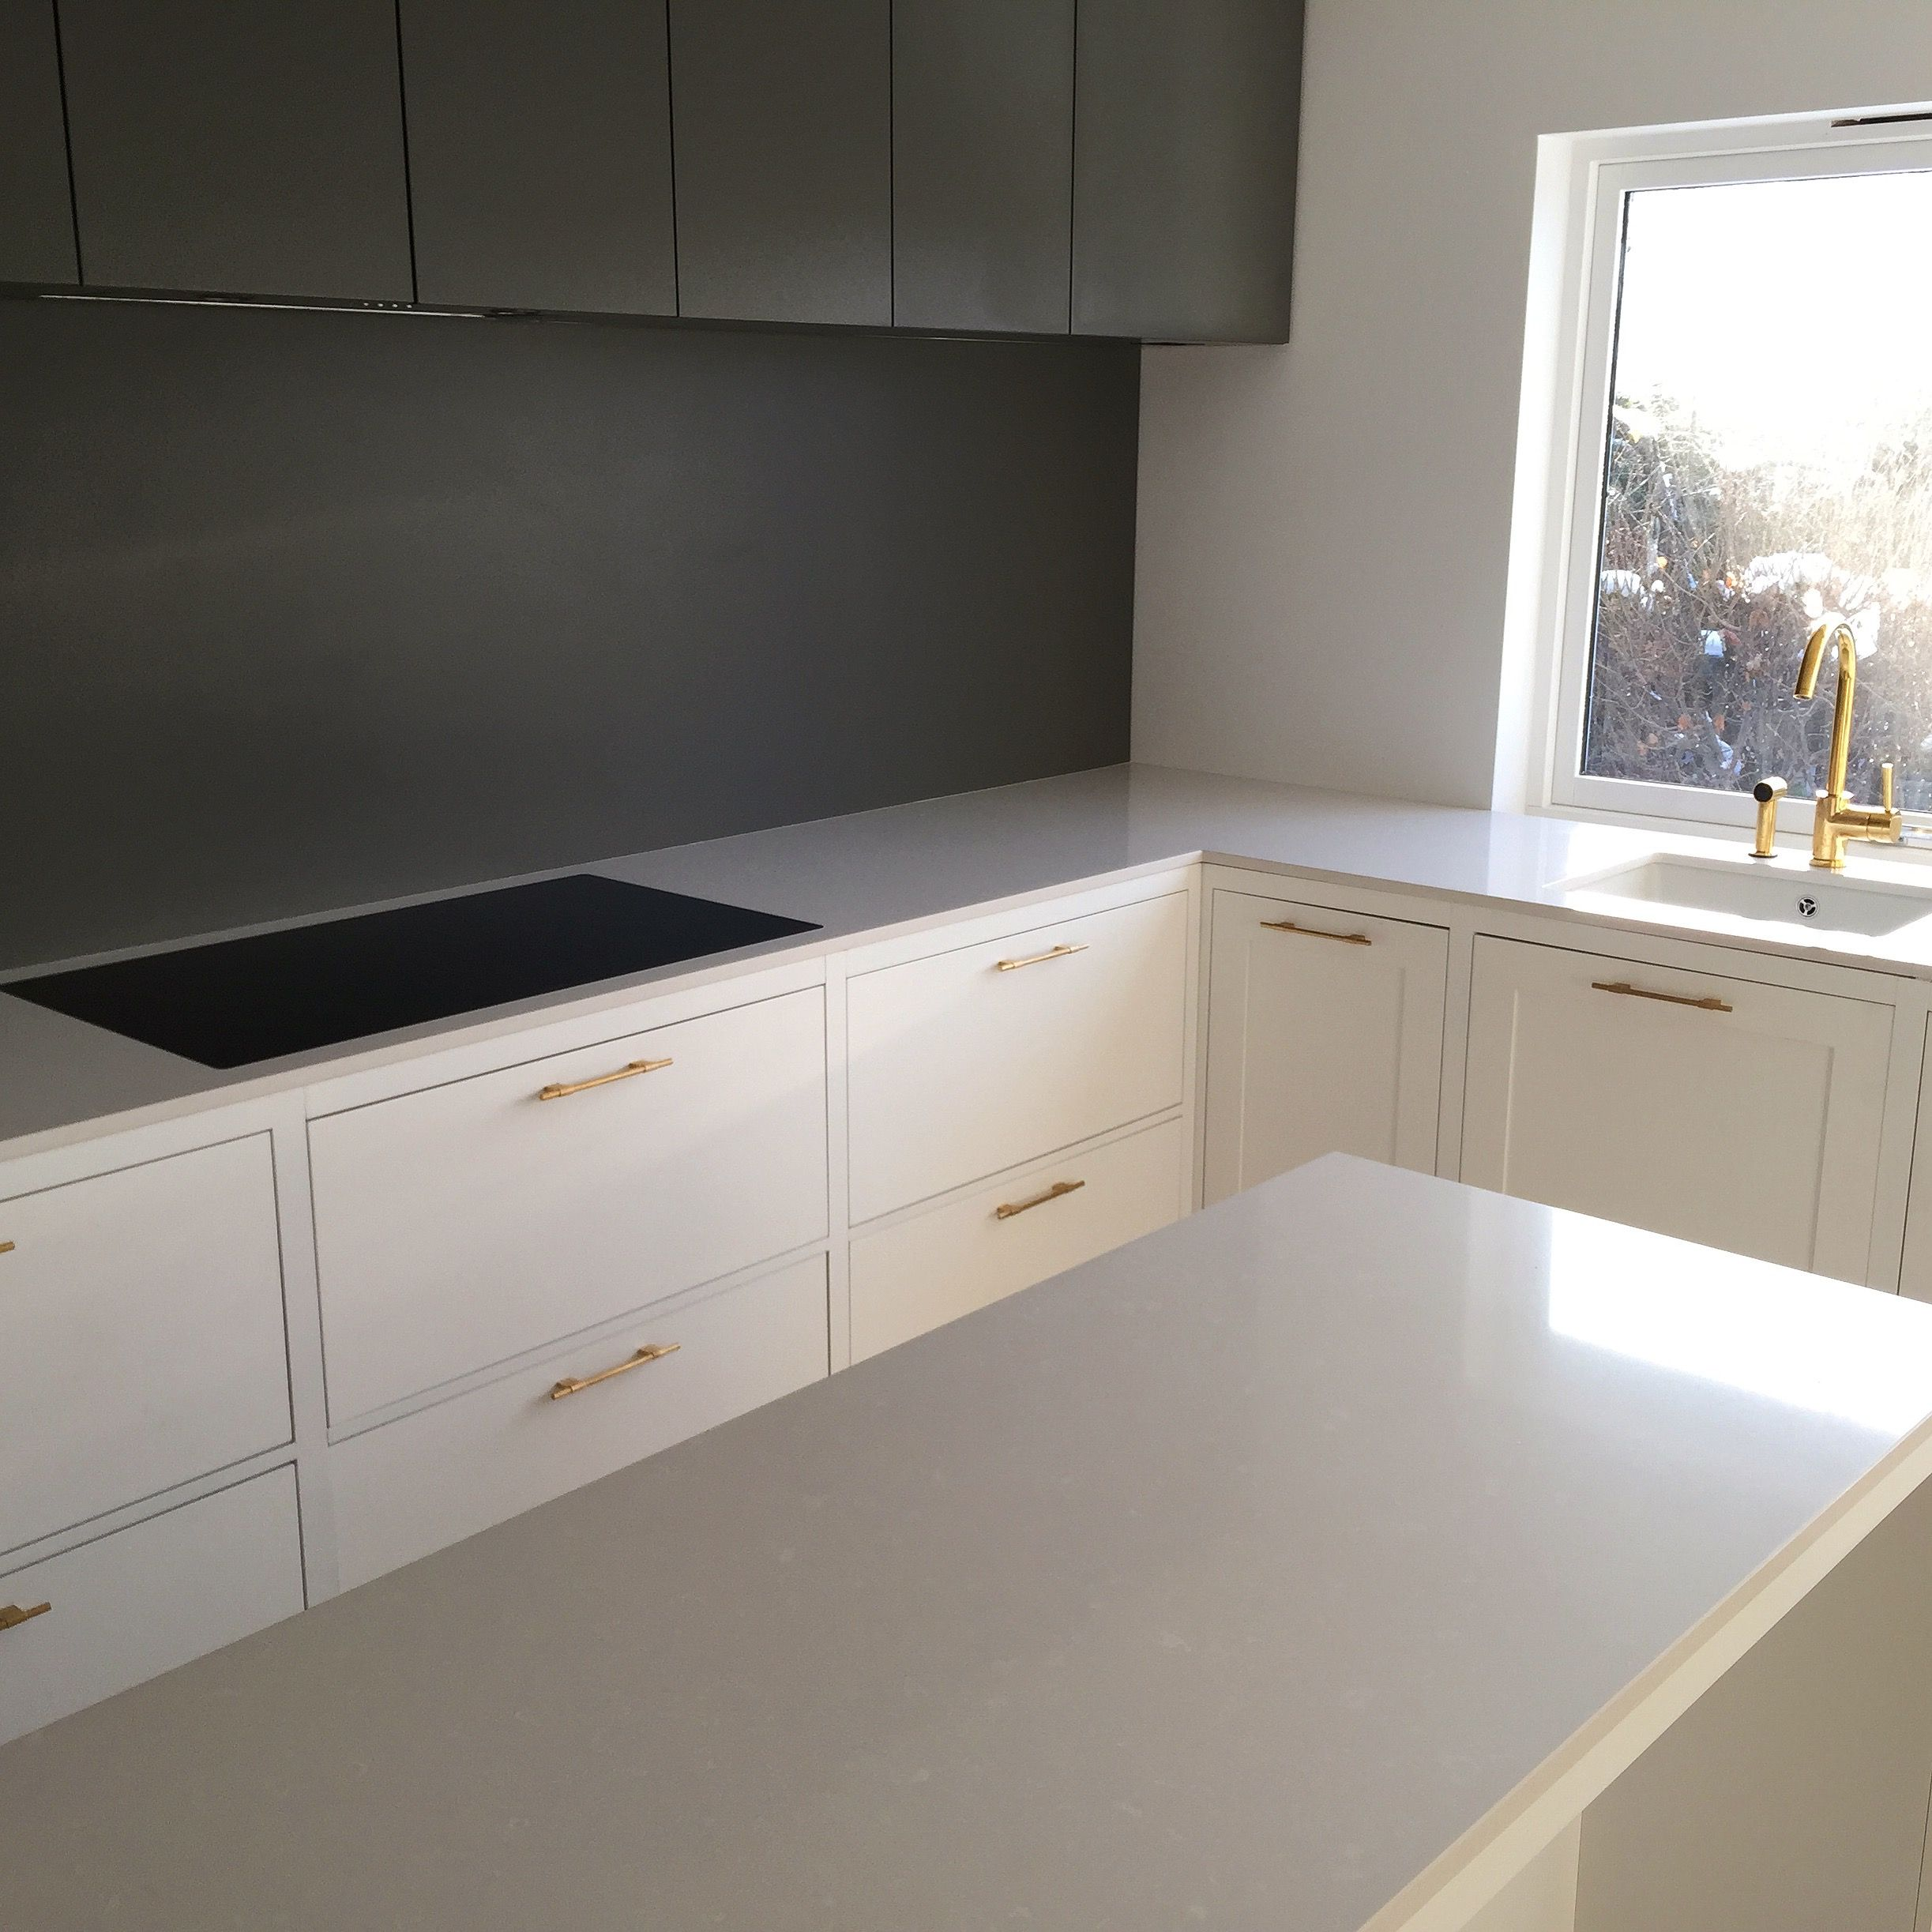 Silestone Yukon Possible Countertop Choice Countertops